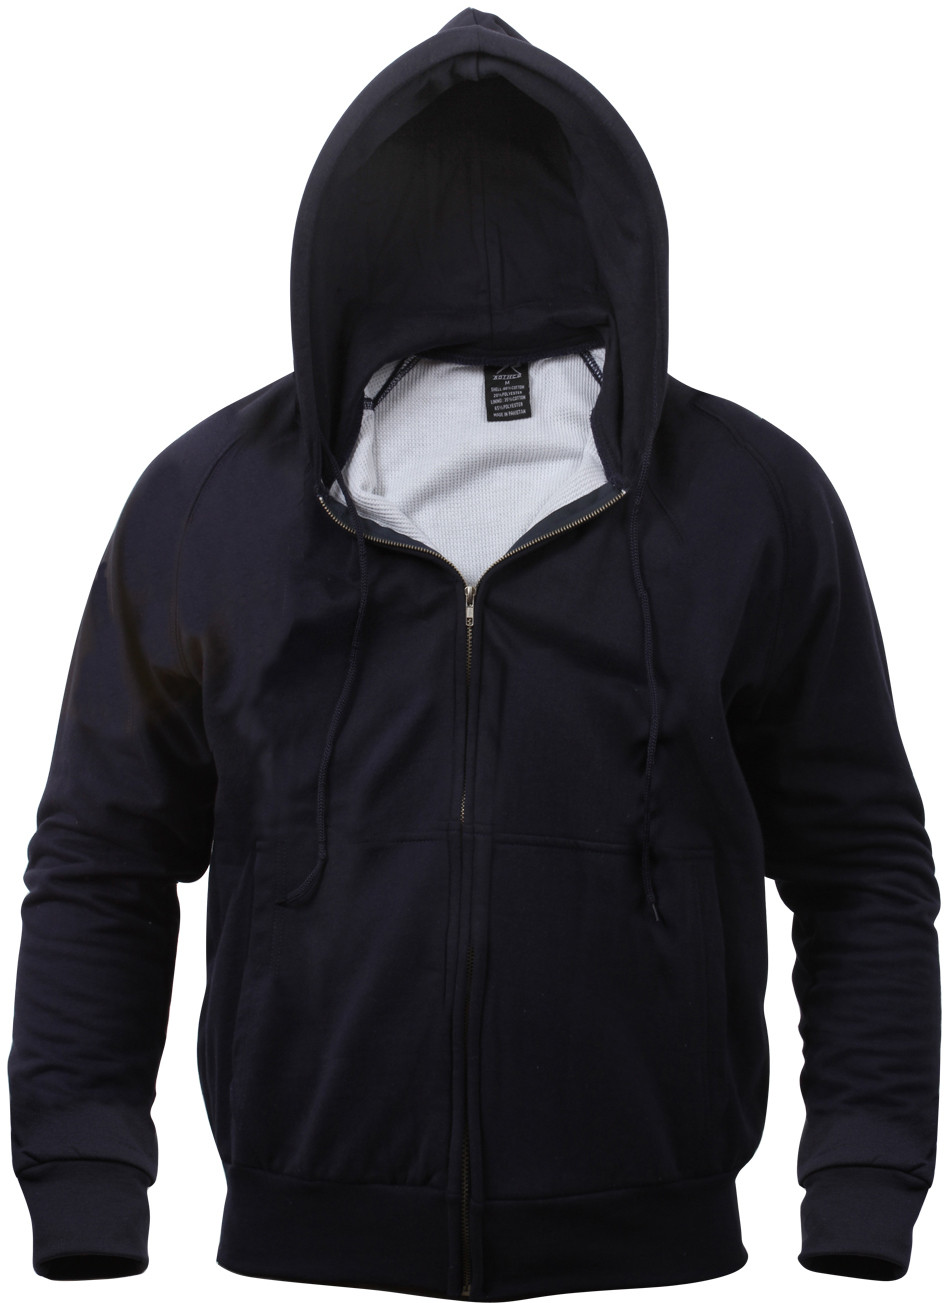 More Views. Navy Blue Thermal Lined Zip Up Hoodie Sweatshirt ... f01aaa346d2